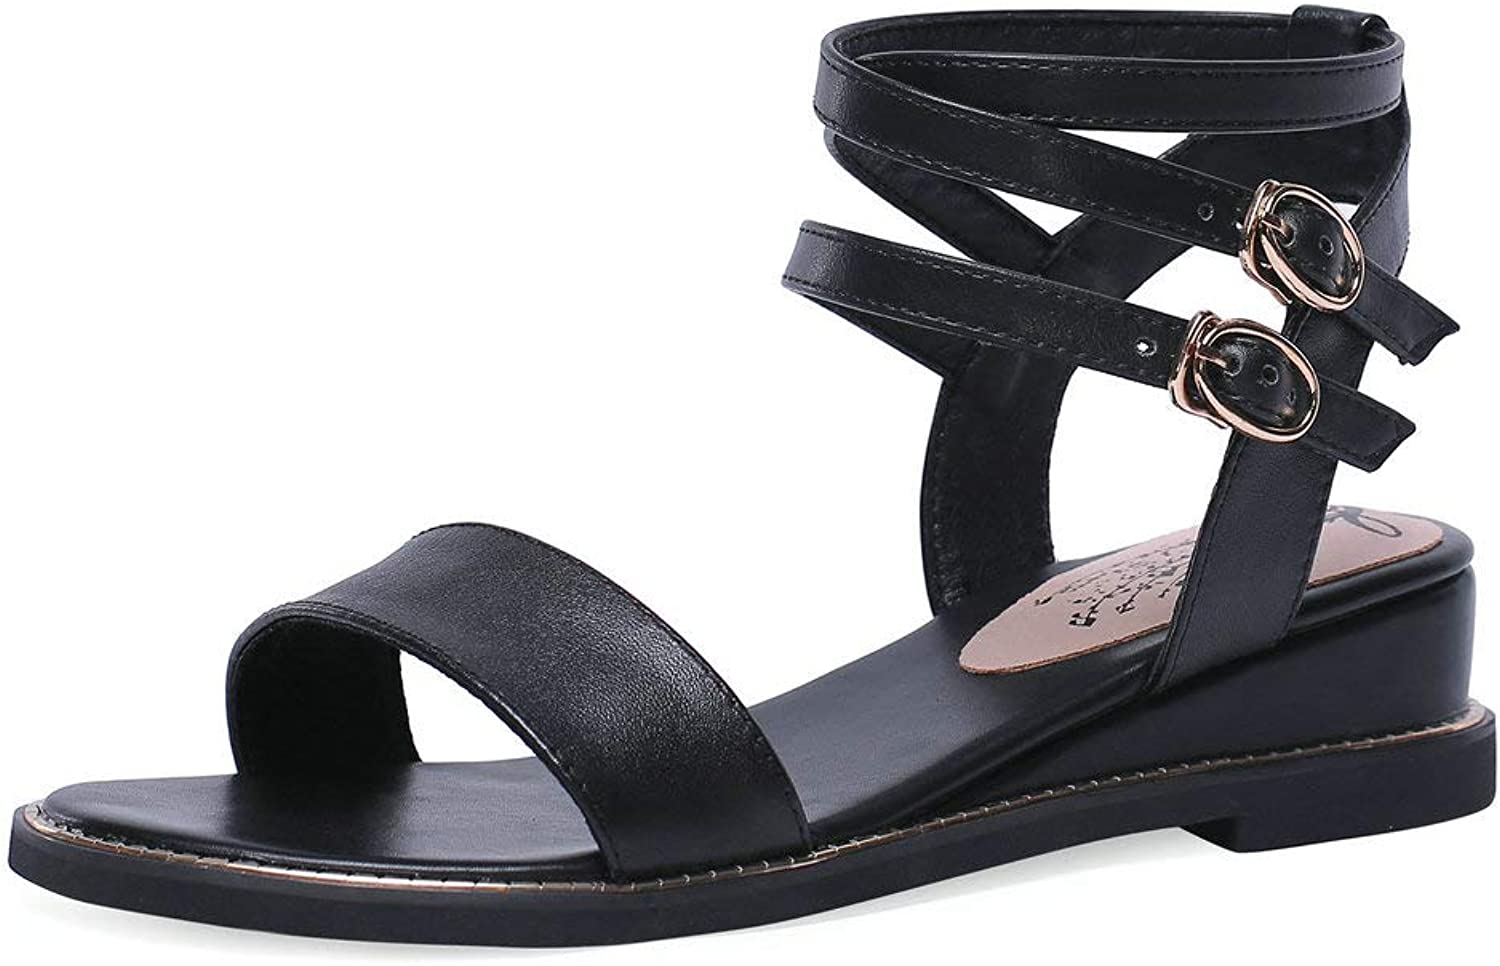 AnMengXinLing Wedge Sandals Women Low Heel Crisscross Ankle Strap Comfort Summer Flat shoes Fashion Strappy Open Toe Genuine Leather Slingback Sandals